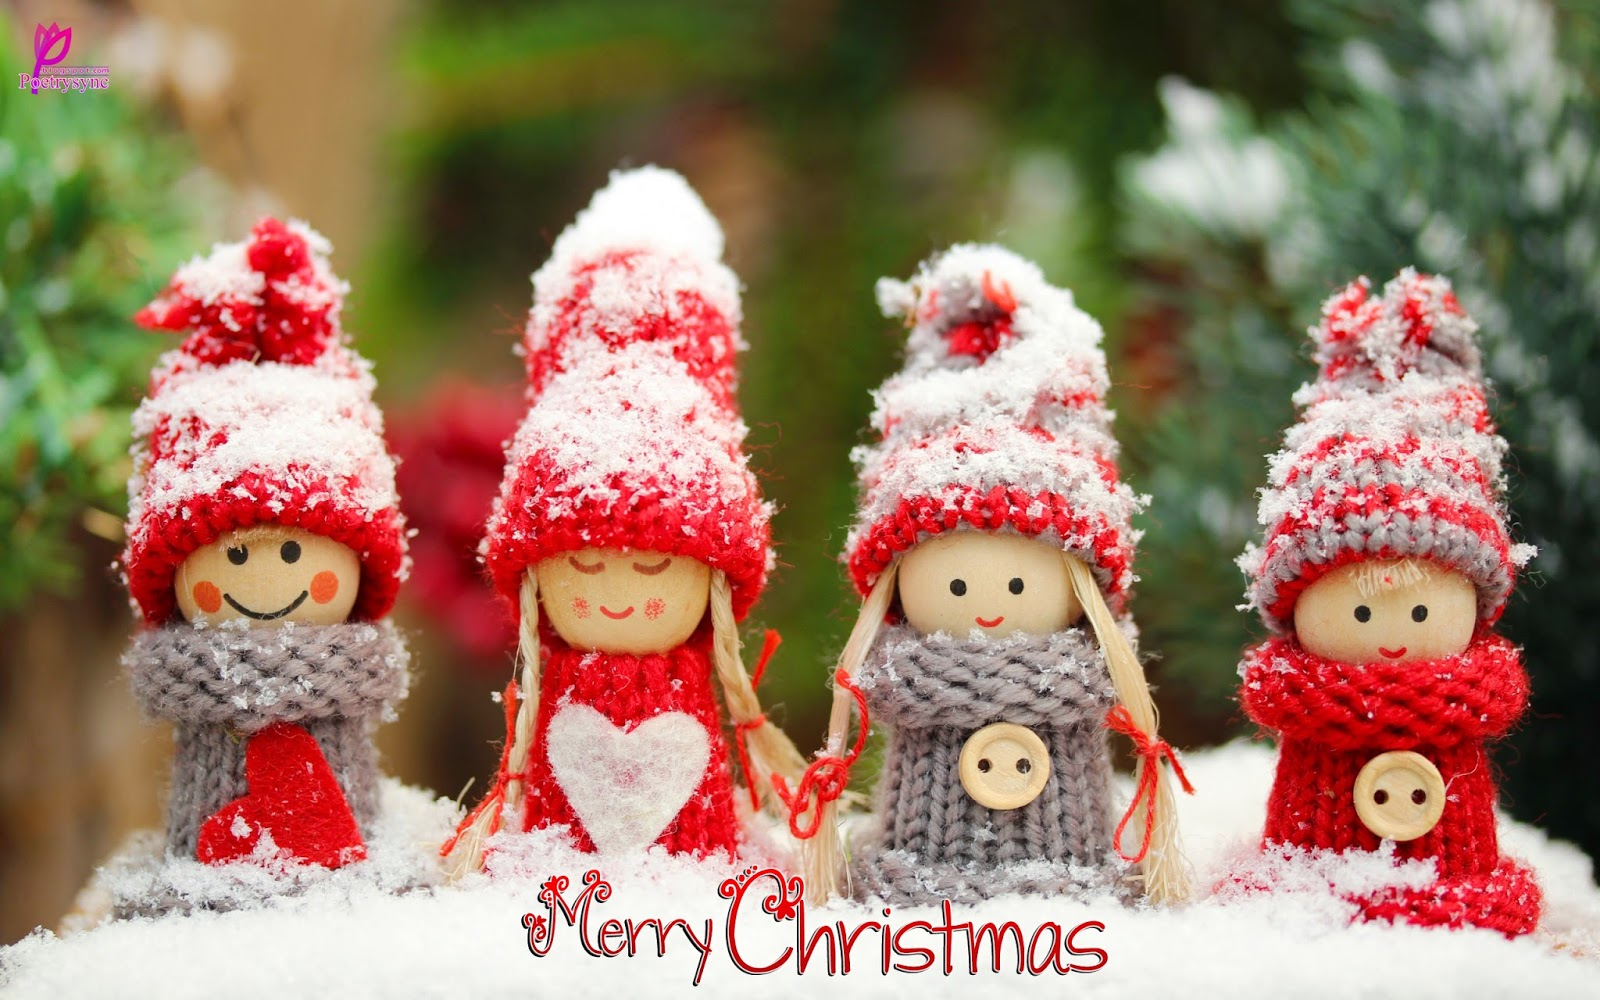 Happy Holidays for Kids Merry Christmas New Year eCard Wallpaper HD 1600x1000